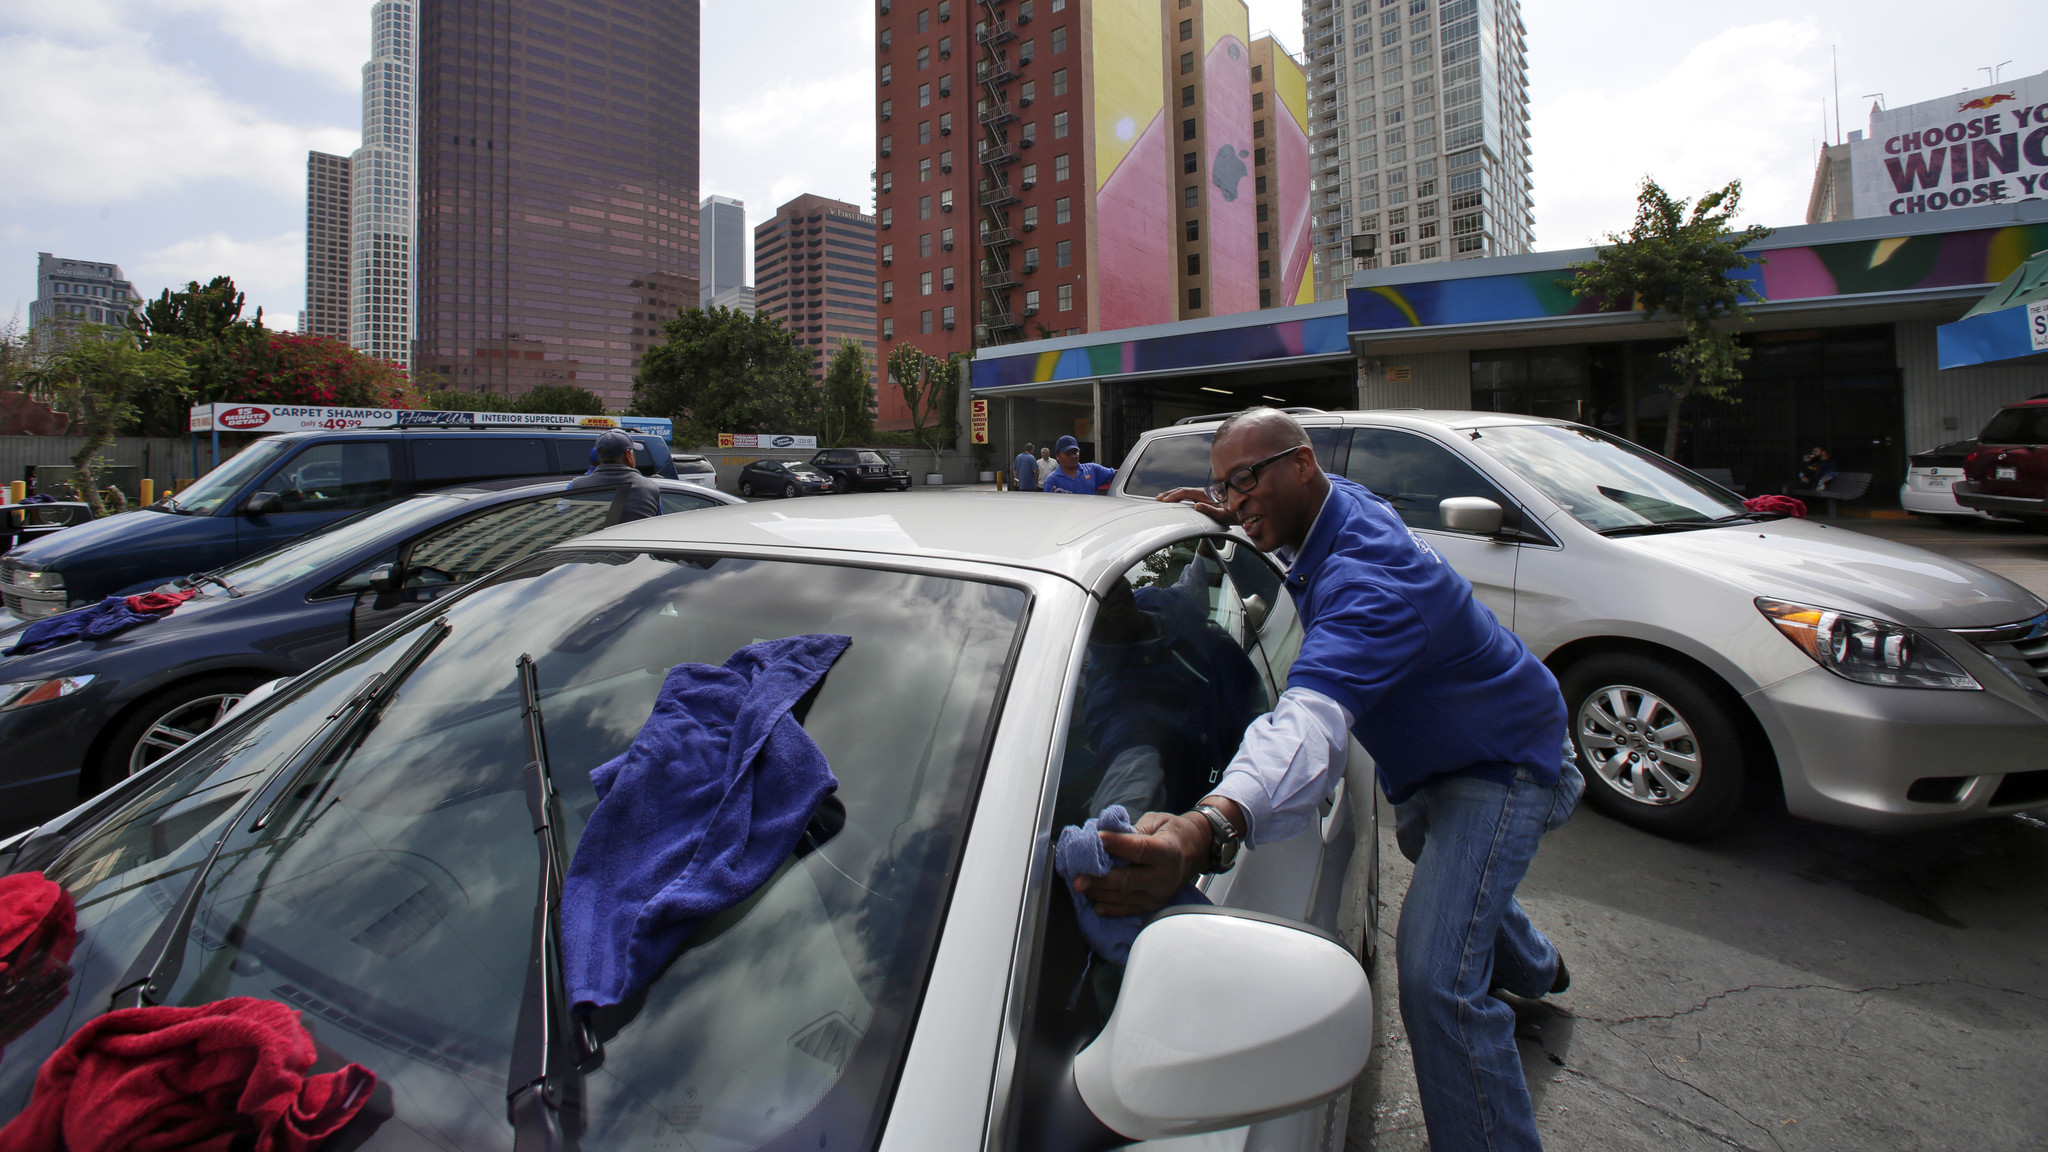 Downtown l a carwash owner cleans up in sale estimated at 25 million la times